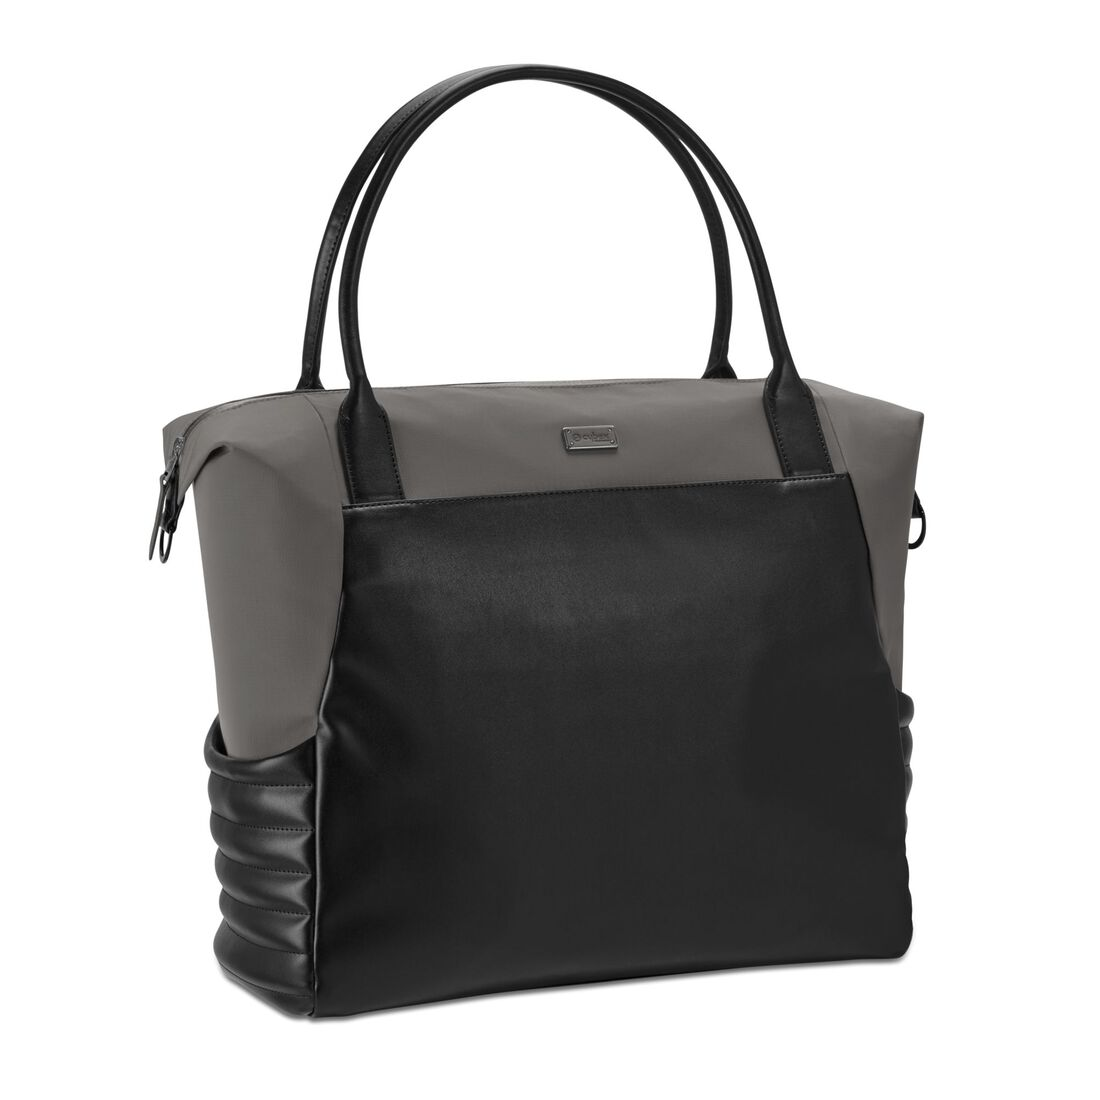 CYBEX Priam Changing Bag - Soho Grey in Soho Grey large image number 1